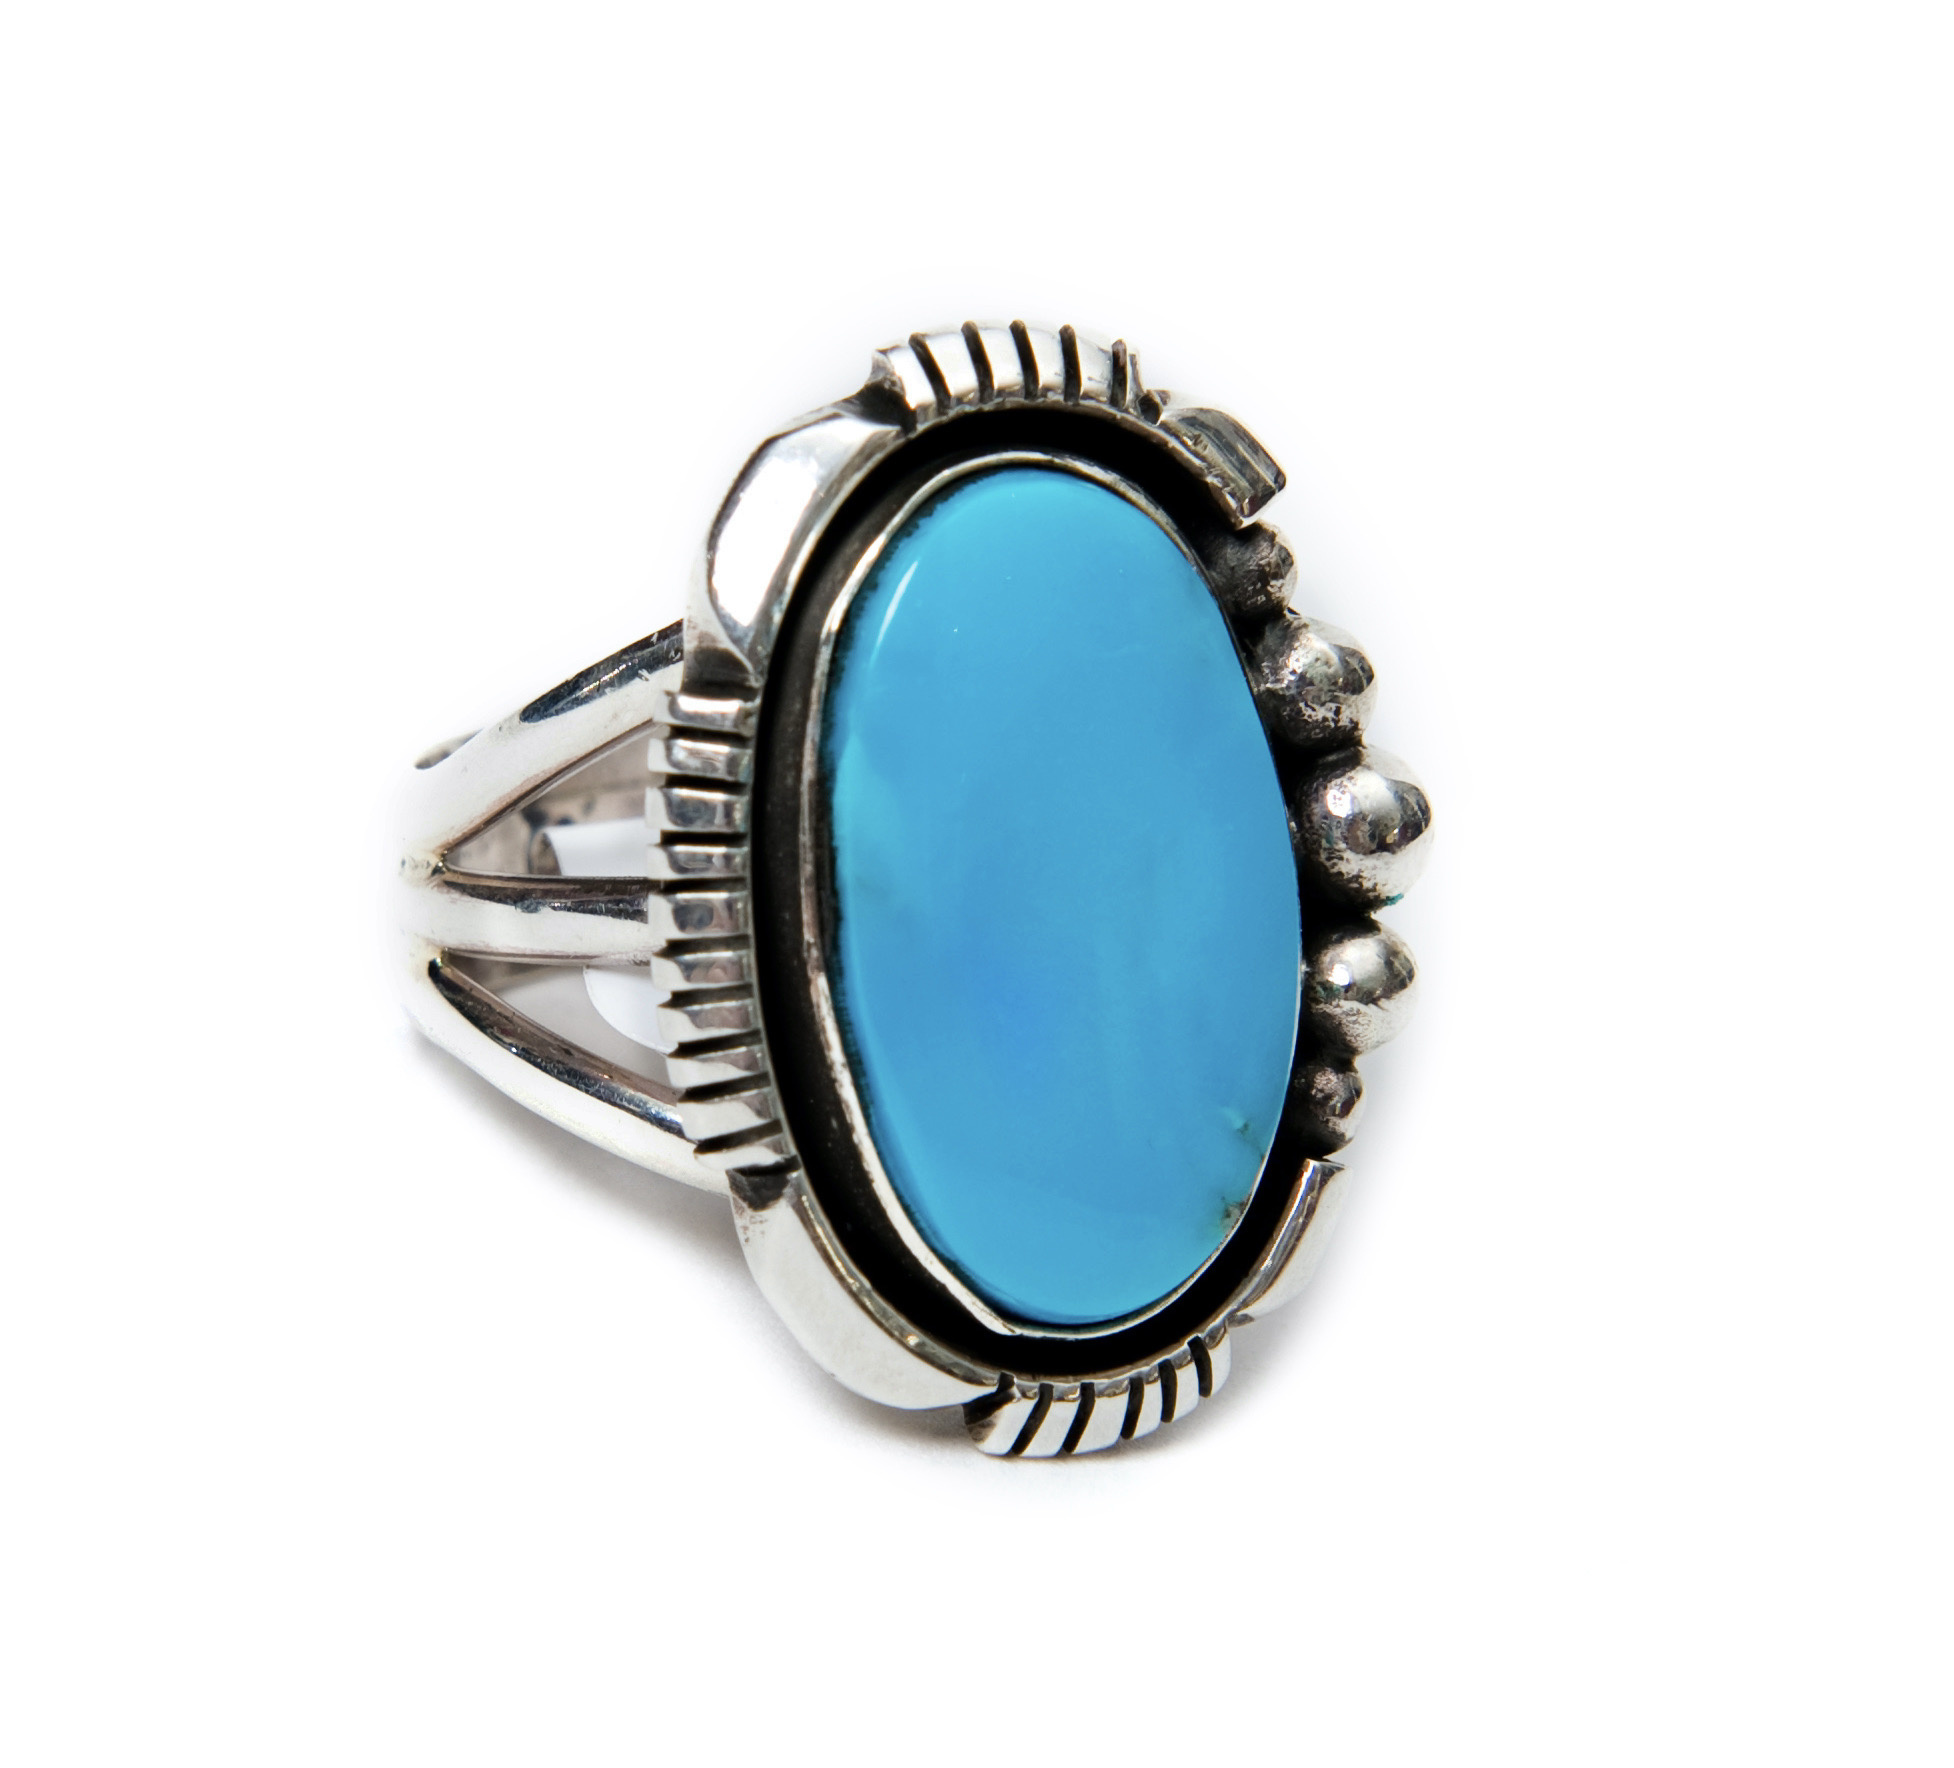 Natural Sleeping Beauty Turquoise Ring by Randy and Etta Endito (Navajo).